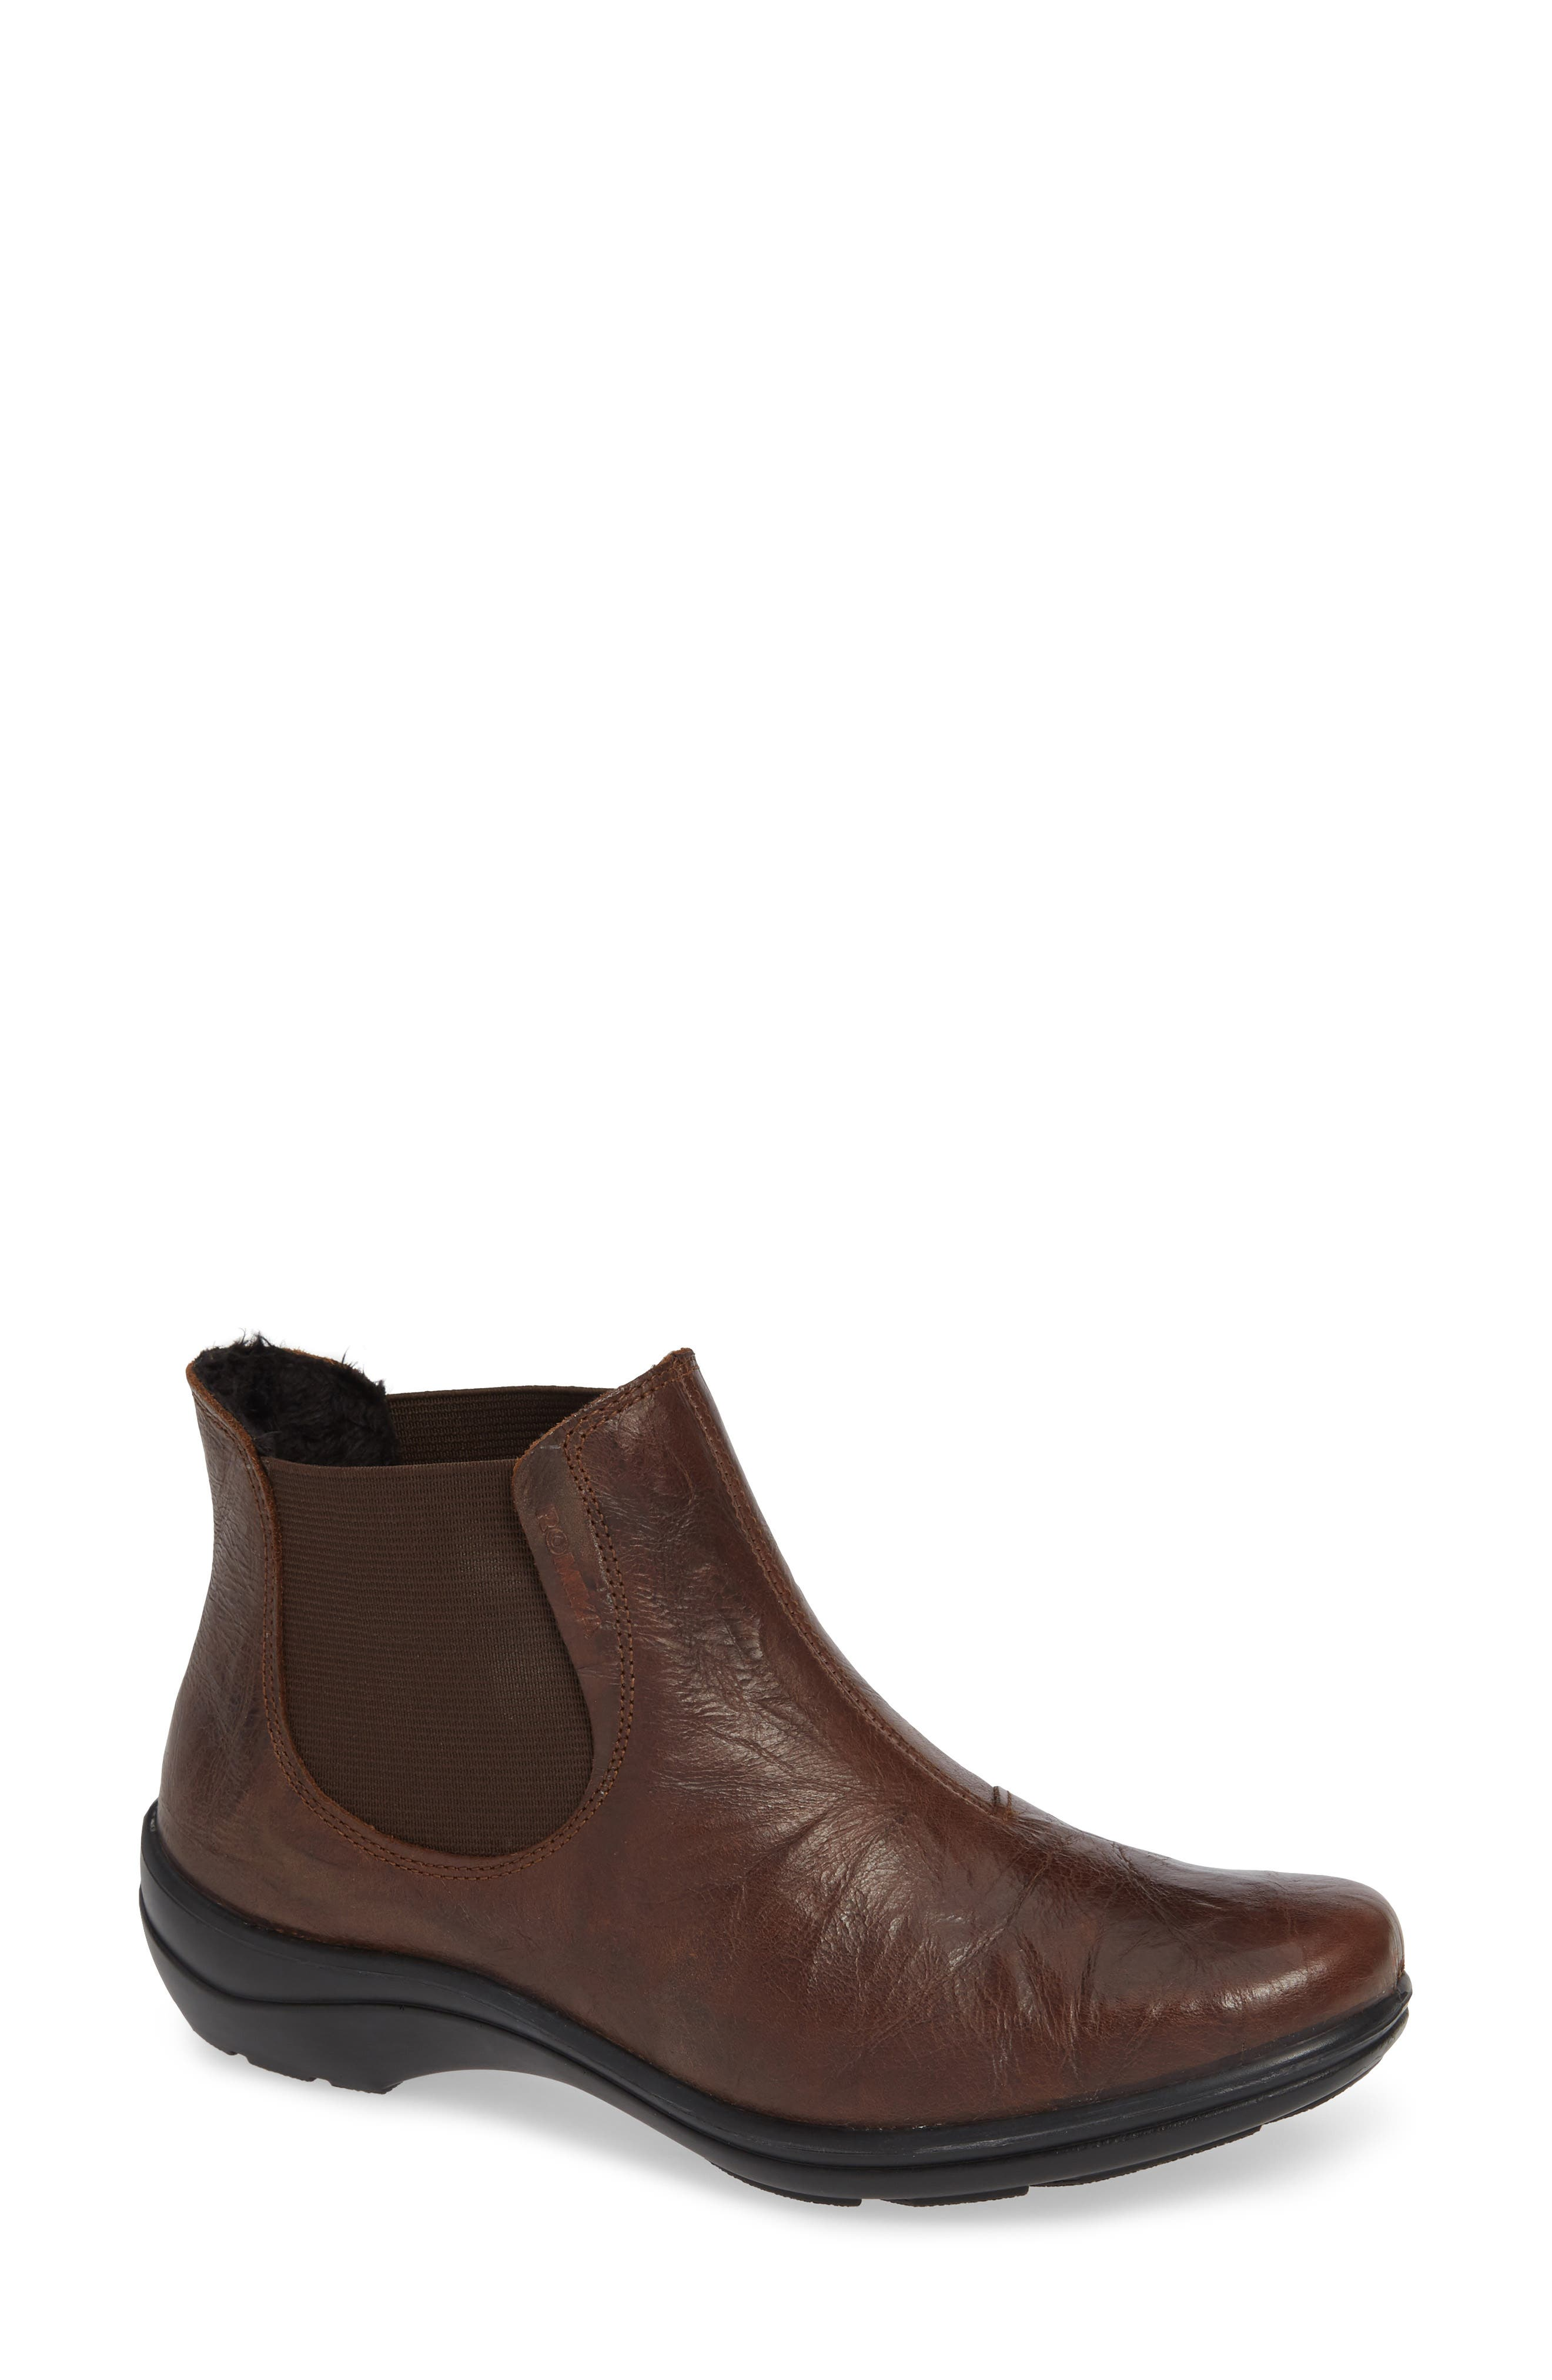 Cassie 46 Chelsea Bootie,                         Main,                         color, BROWN LEATHER